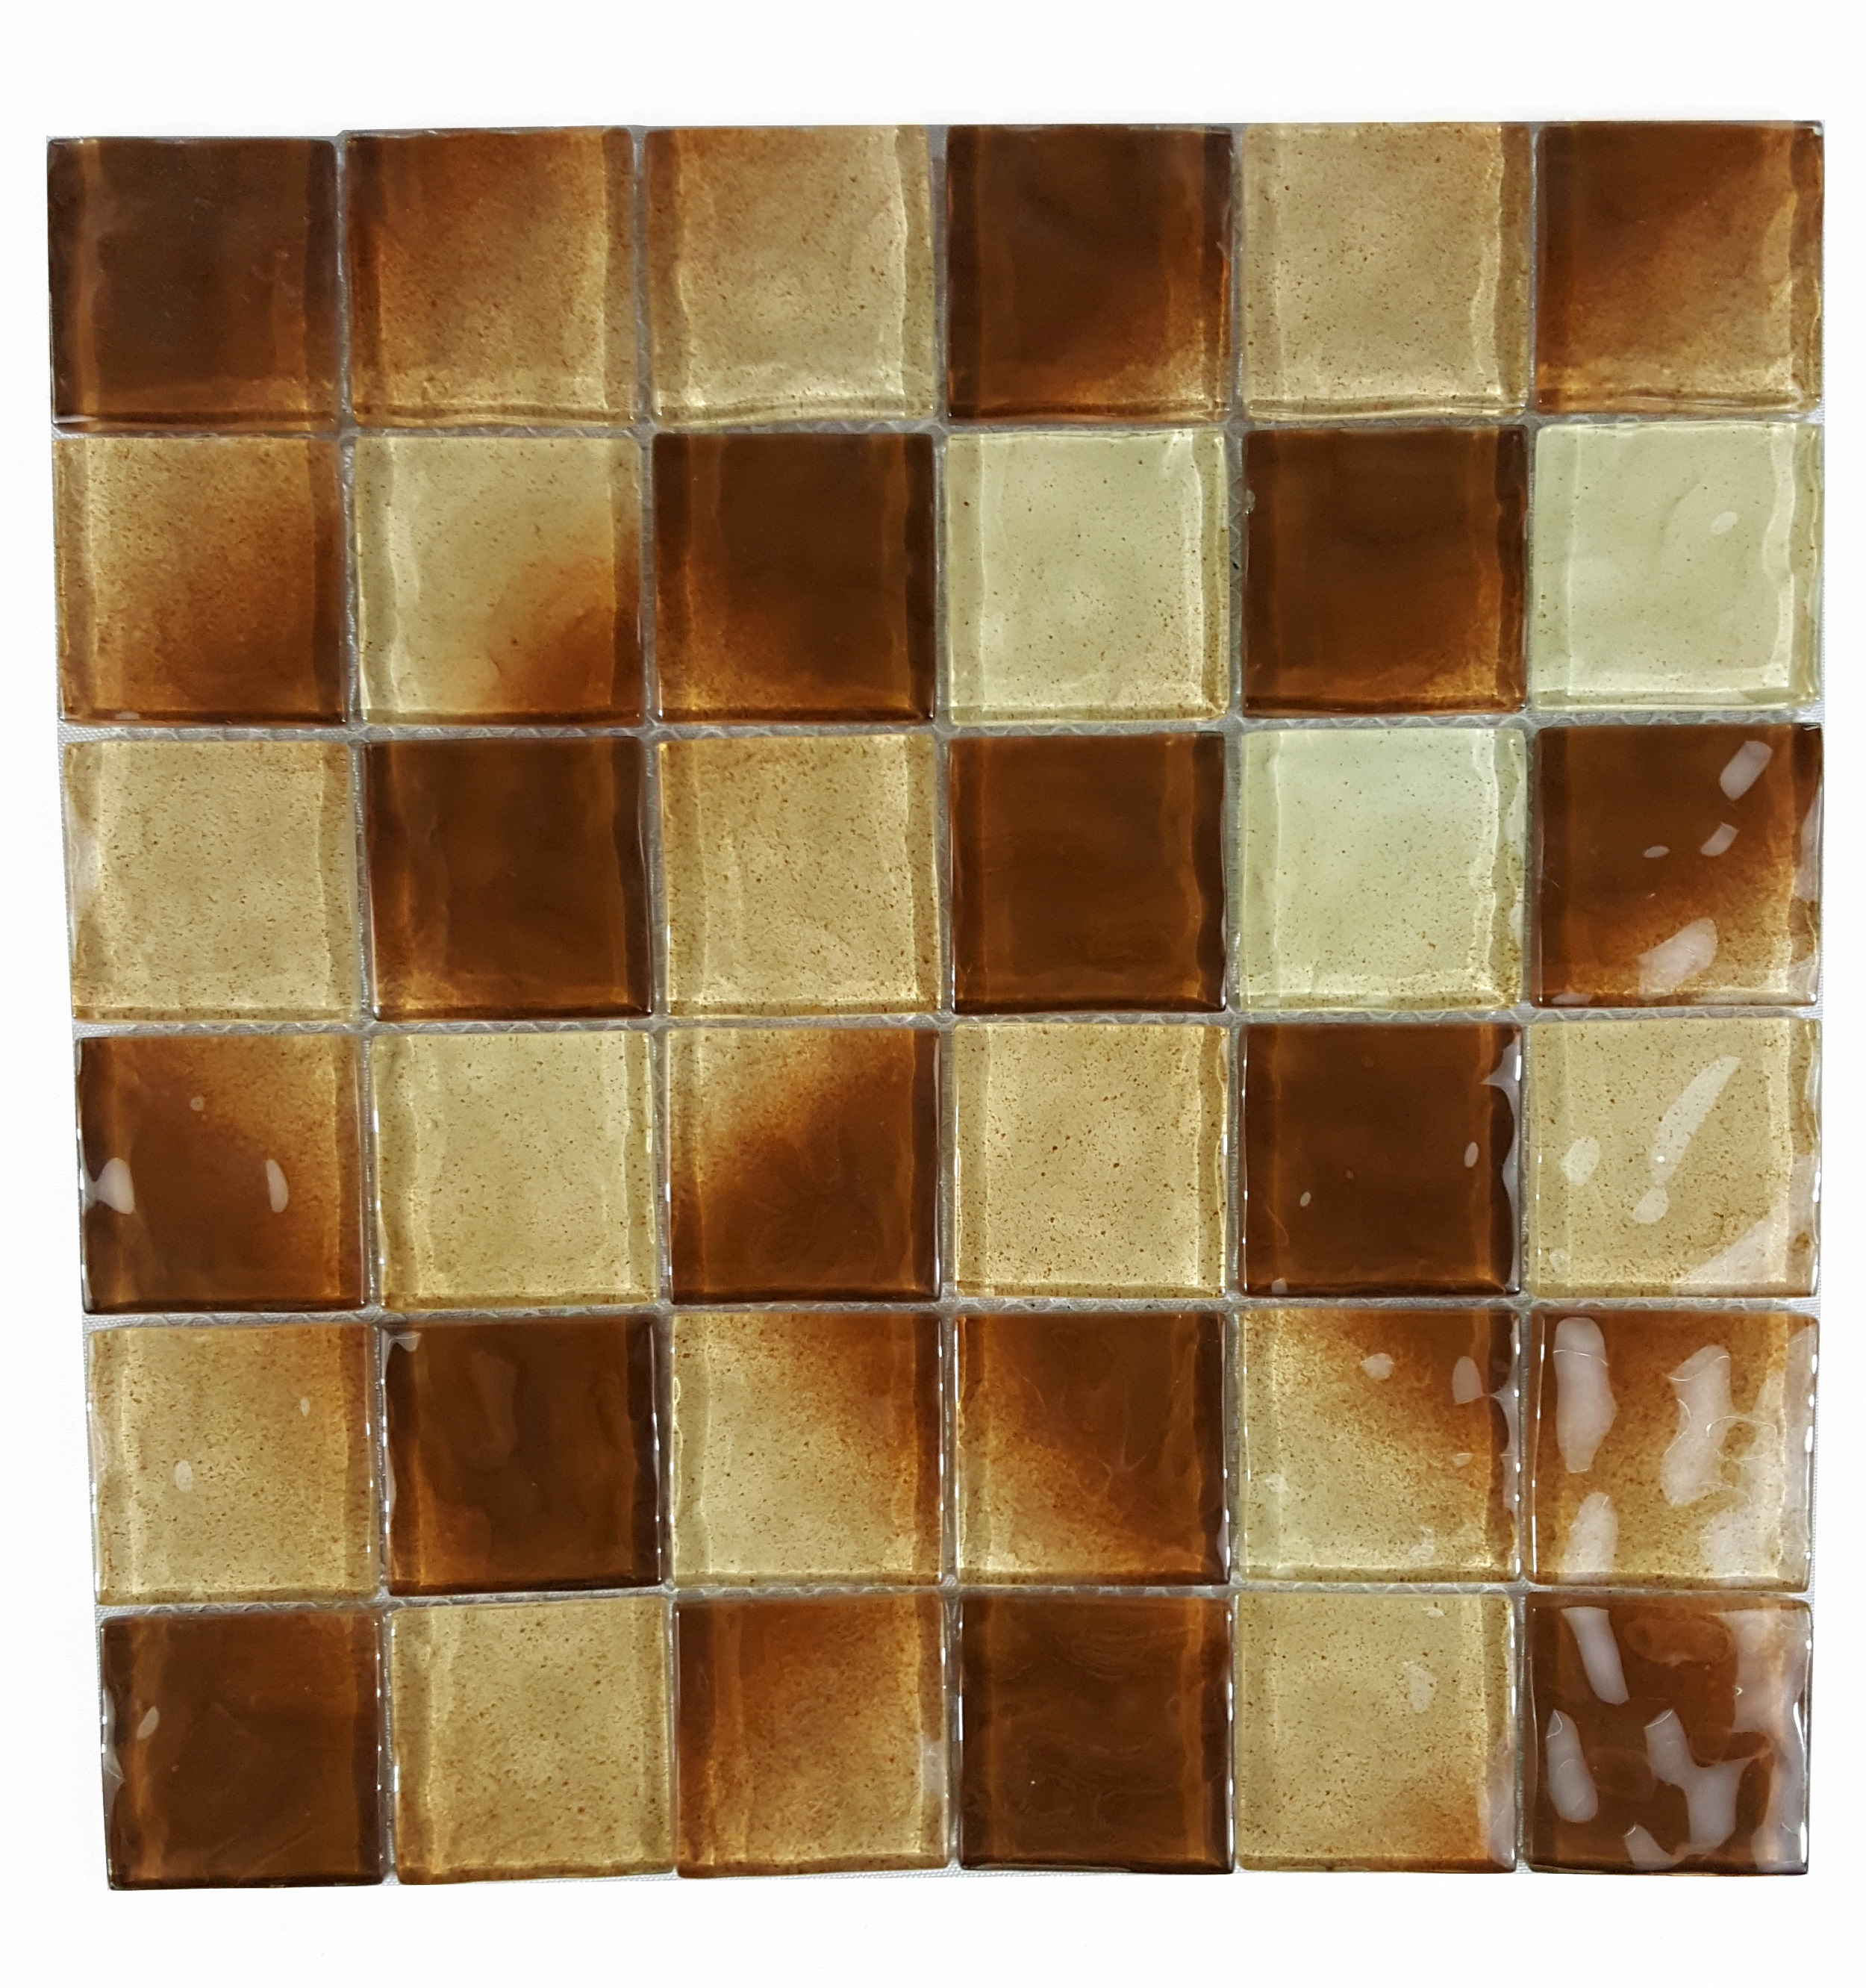 "Abolos- Watermarks 2"" x 2"" Glass Mosaic Backsplash Tile in Brown (4.9sqft / 5pcs)"